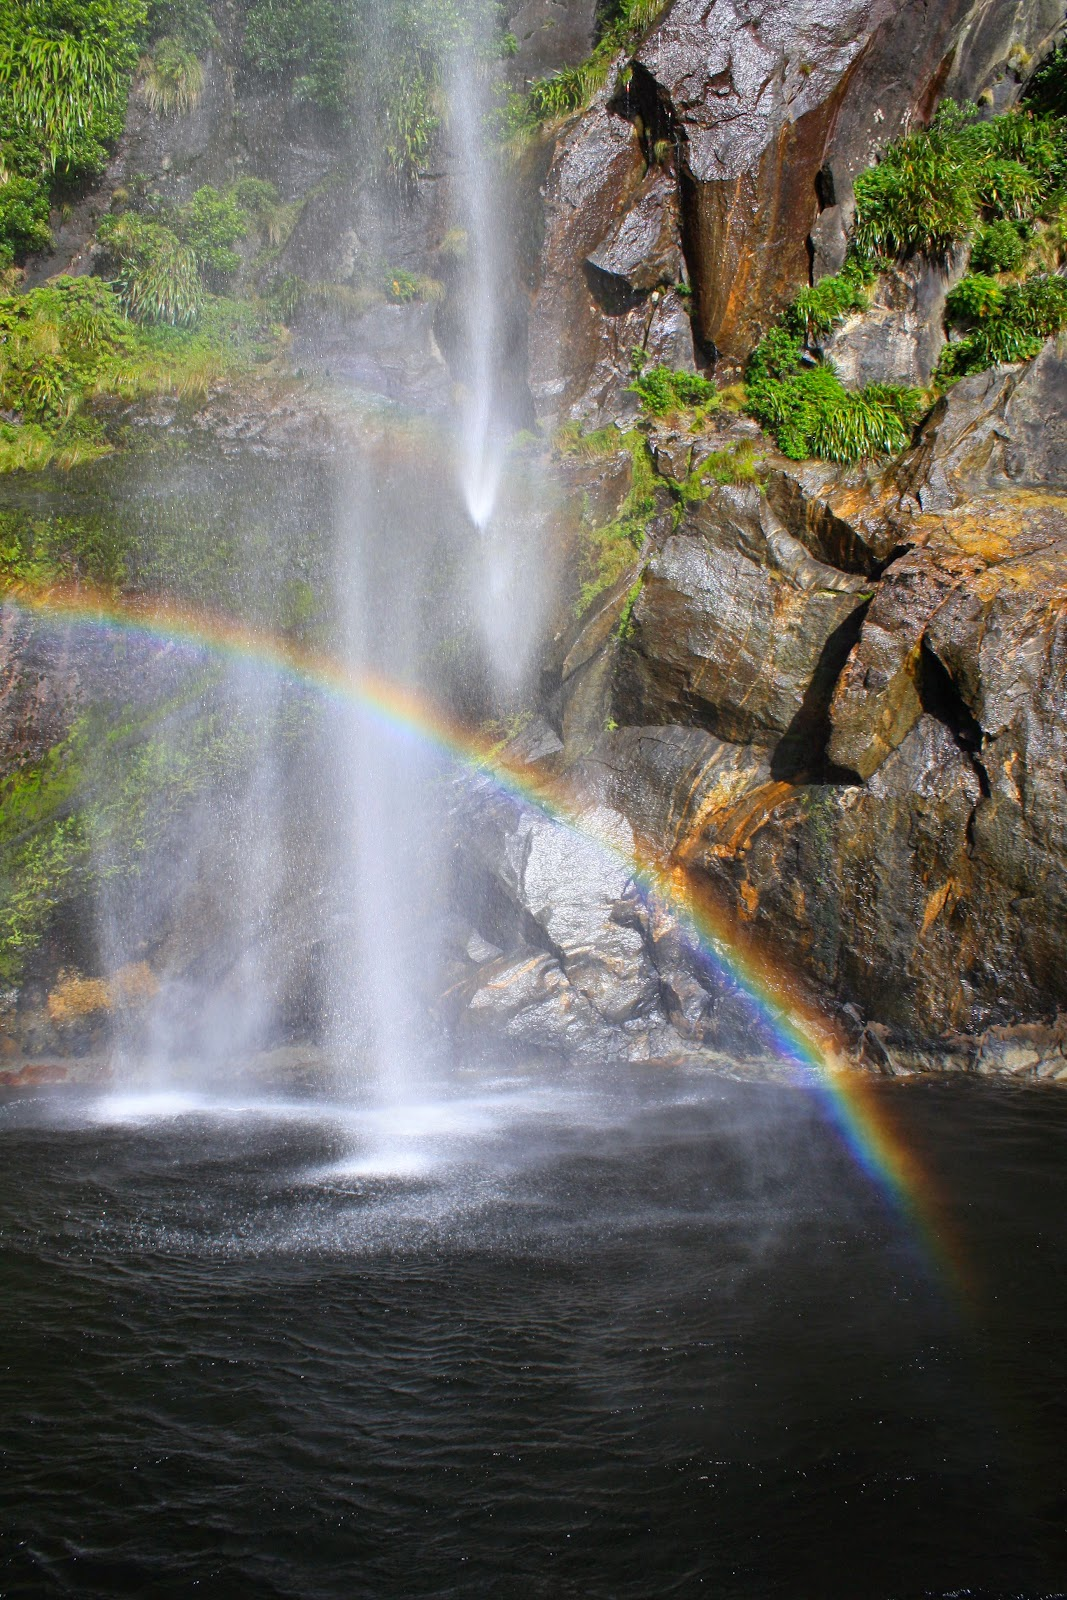 A waterfall making a rainbow in Milford Sound.